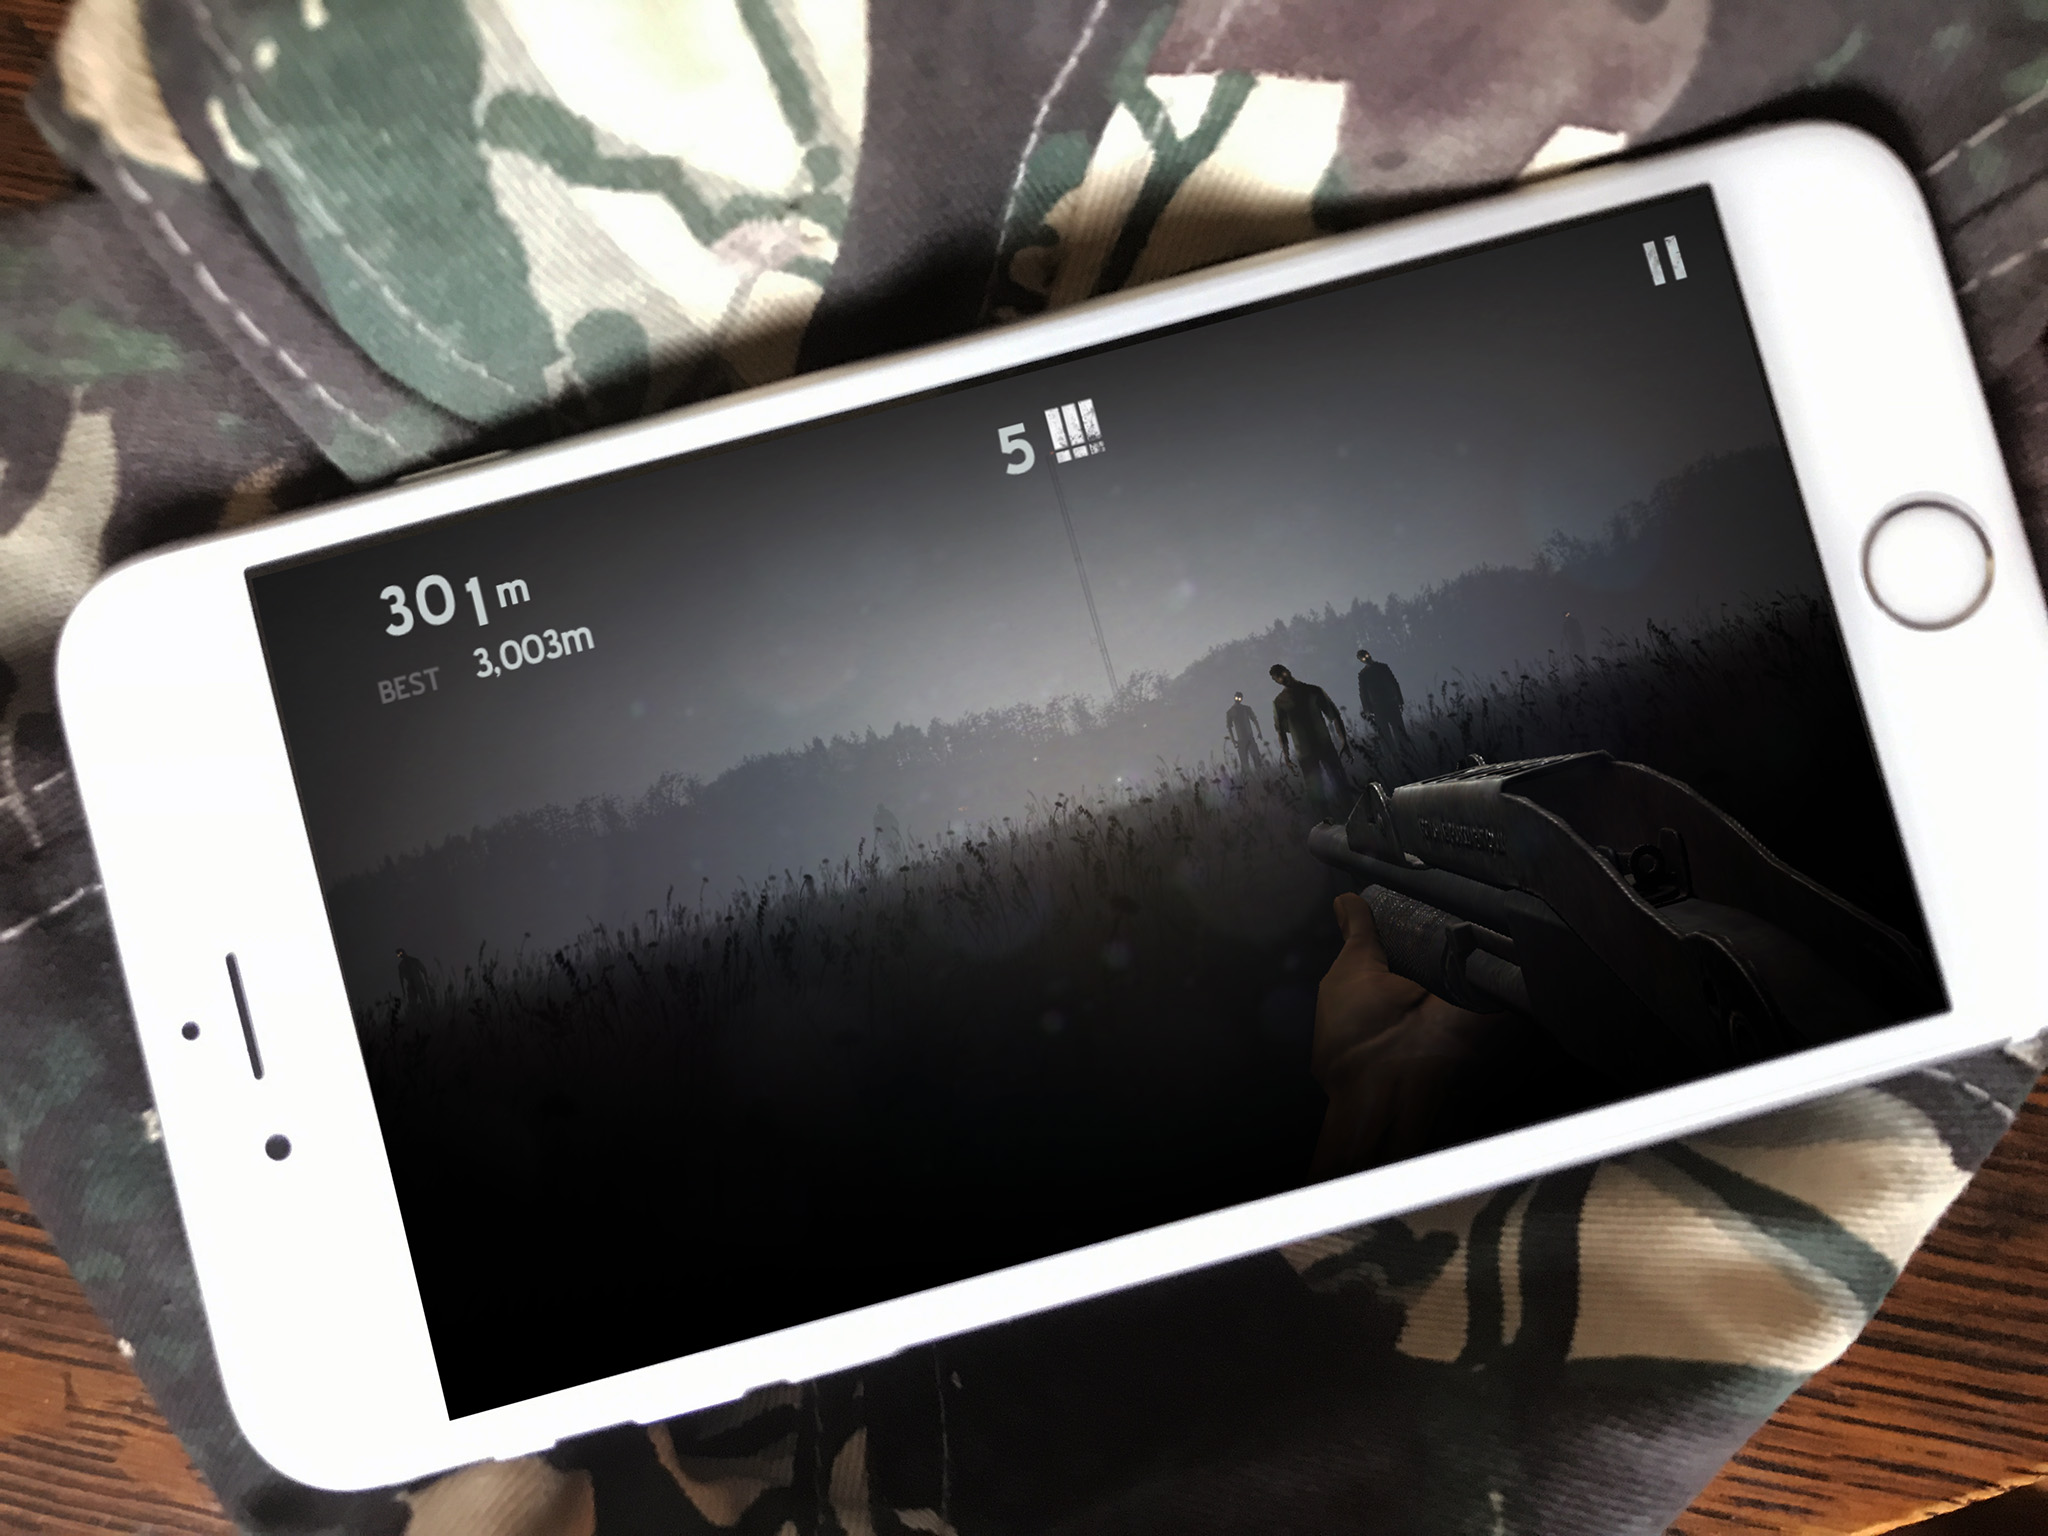 Gaming Wallpaper Iphone X Best Fps Games For Iphone And Ipad Imore